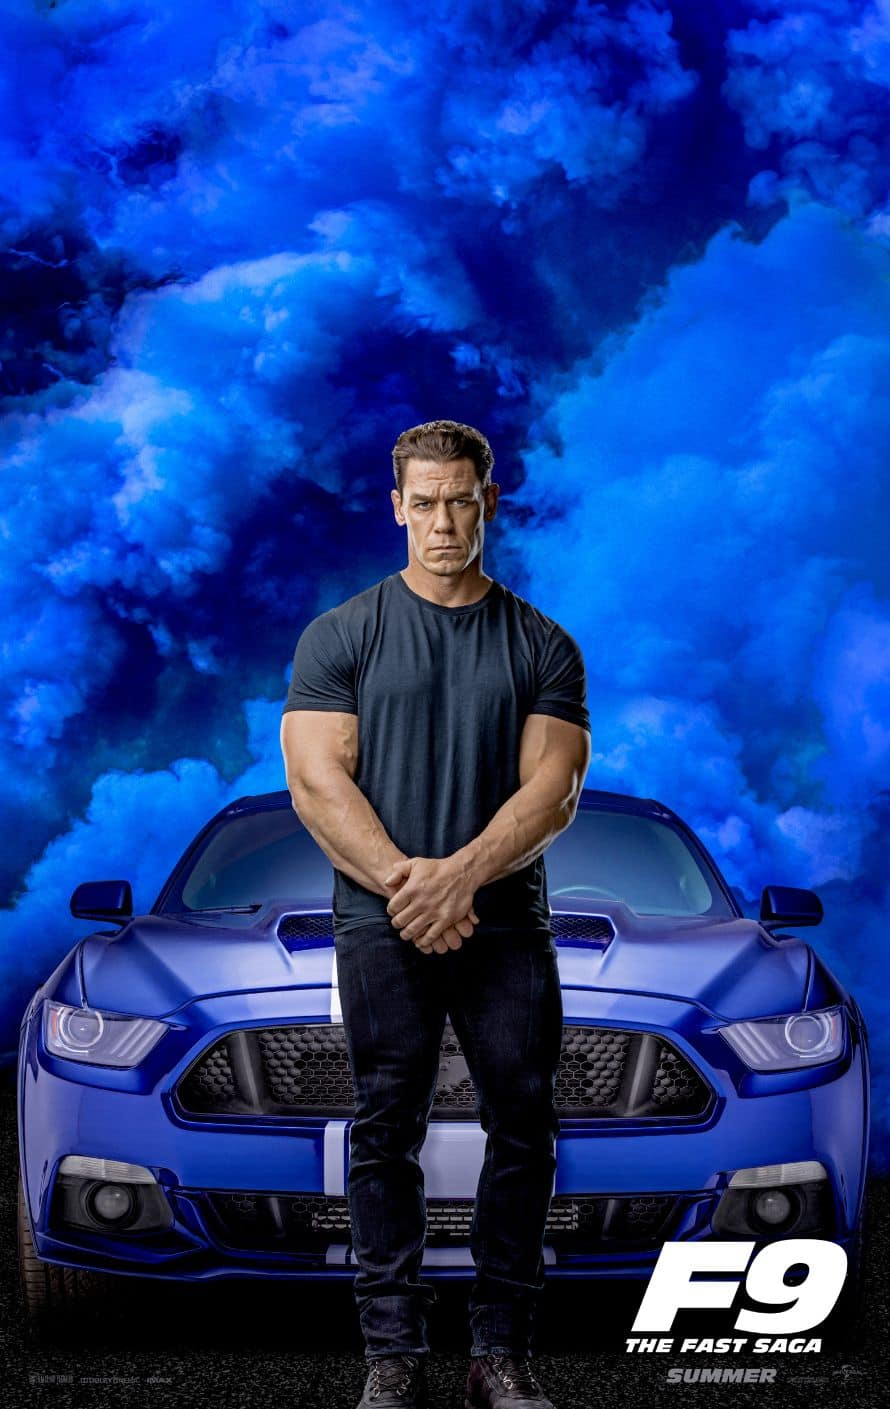 Fast and Furious Vin Diesel John Cena